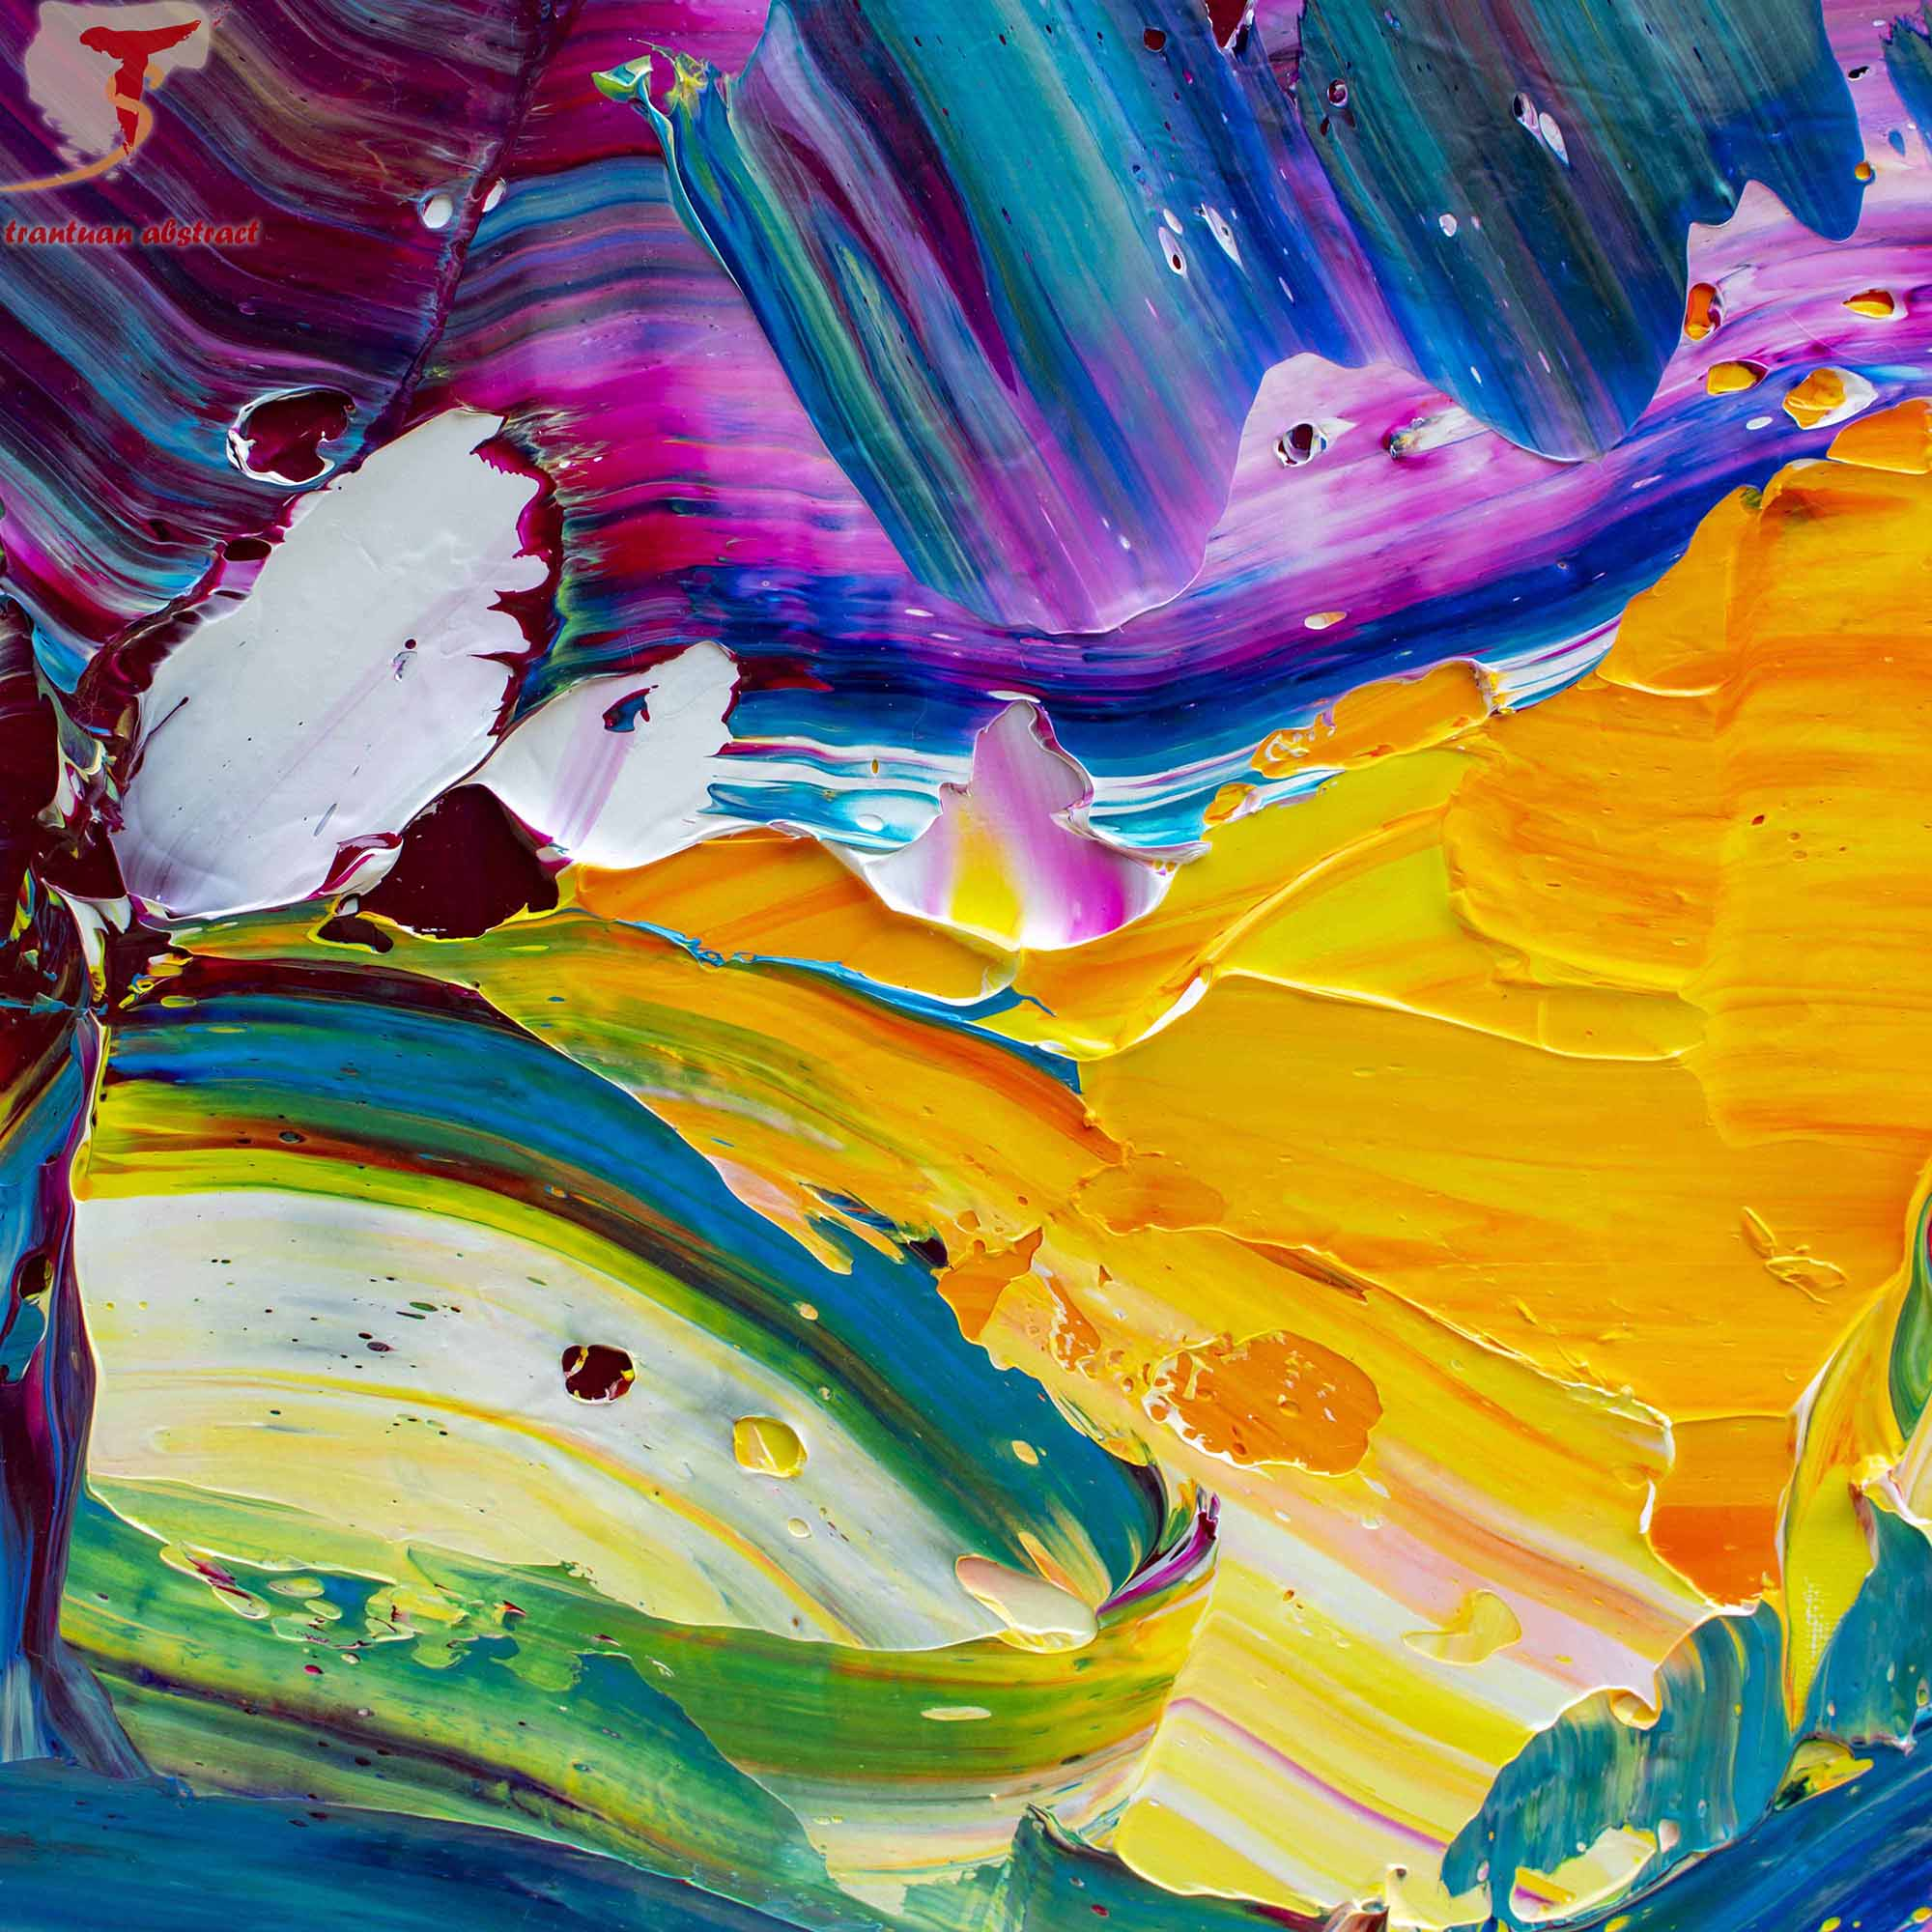 Tran Tuan Abstract The Light 2021 135 x 80 x 5 cm Acrylic on Canvas Painting Detail (1)